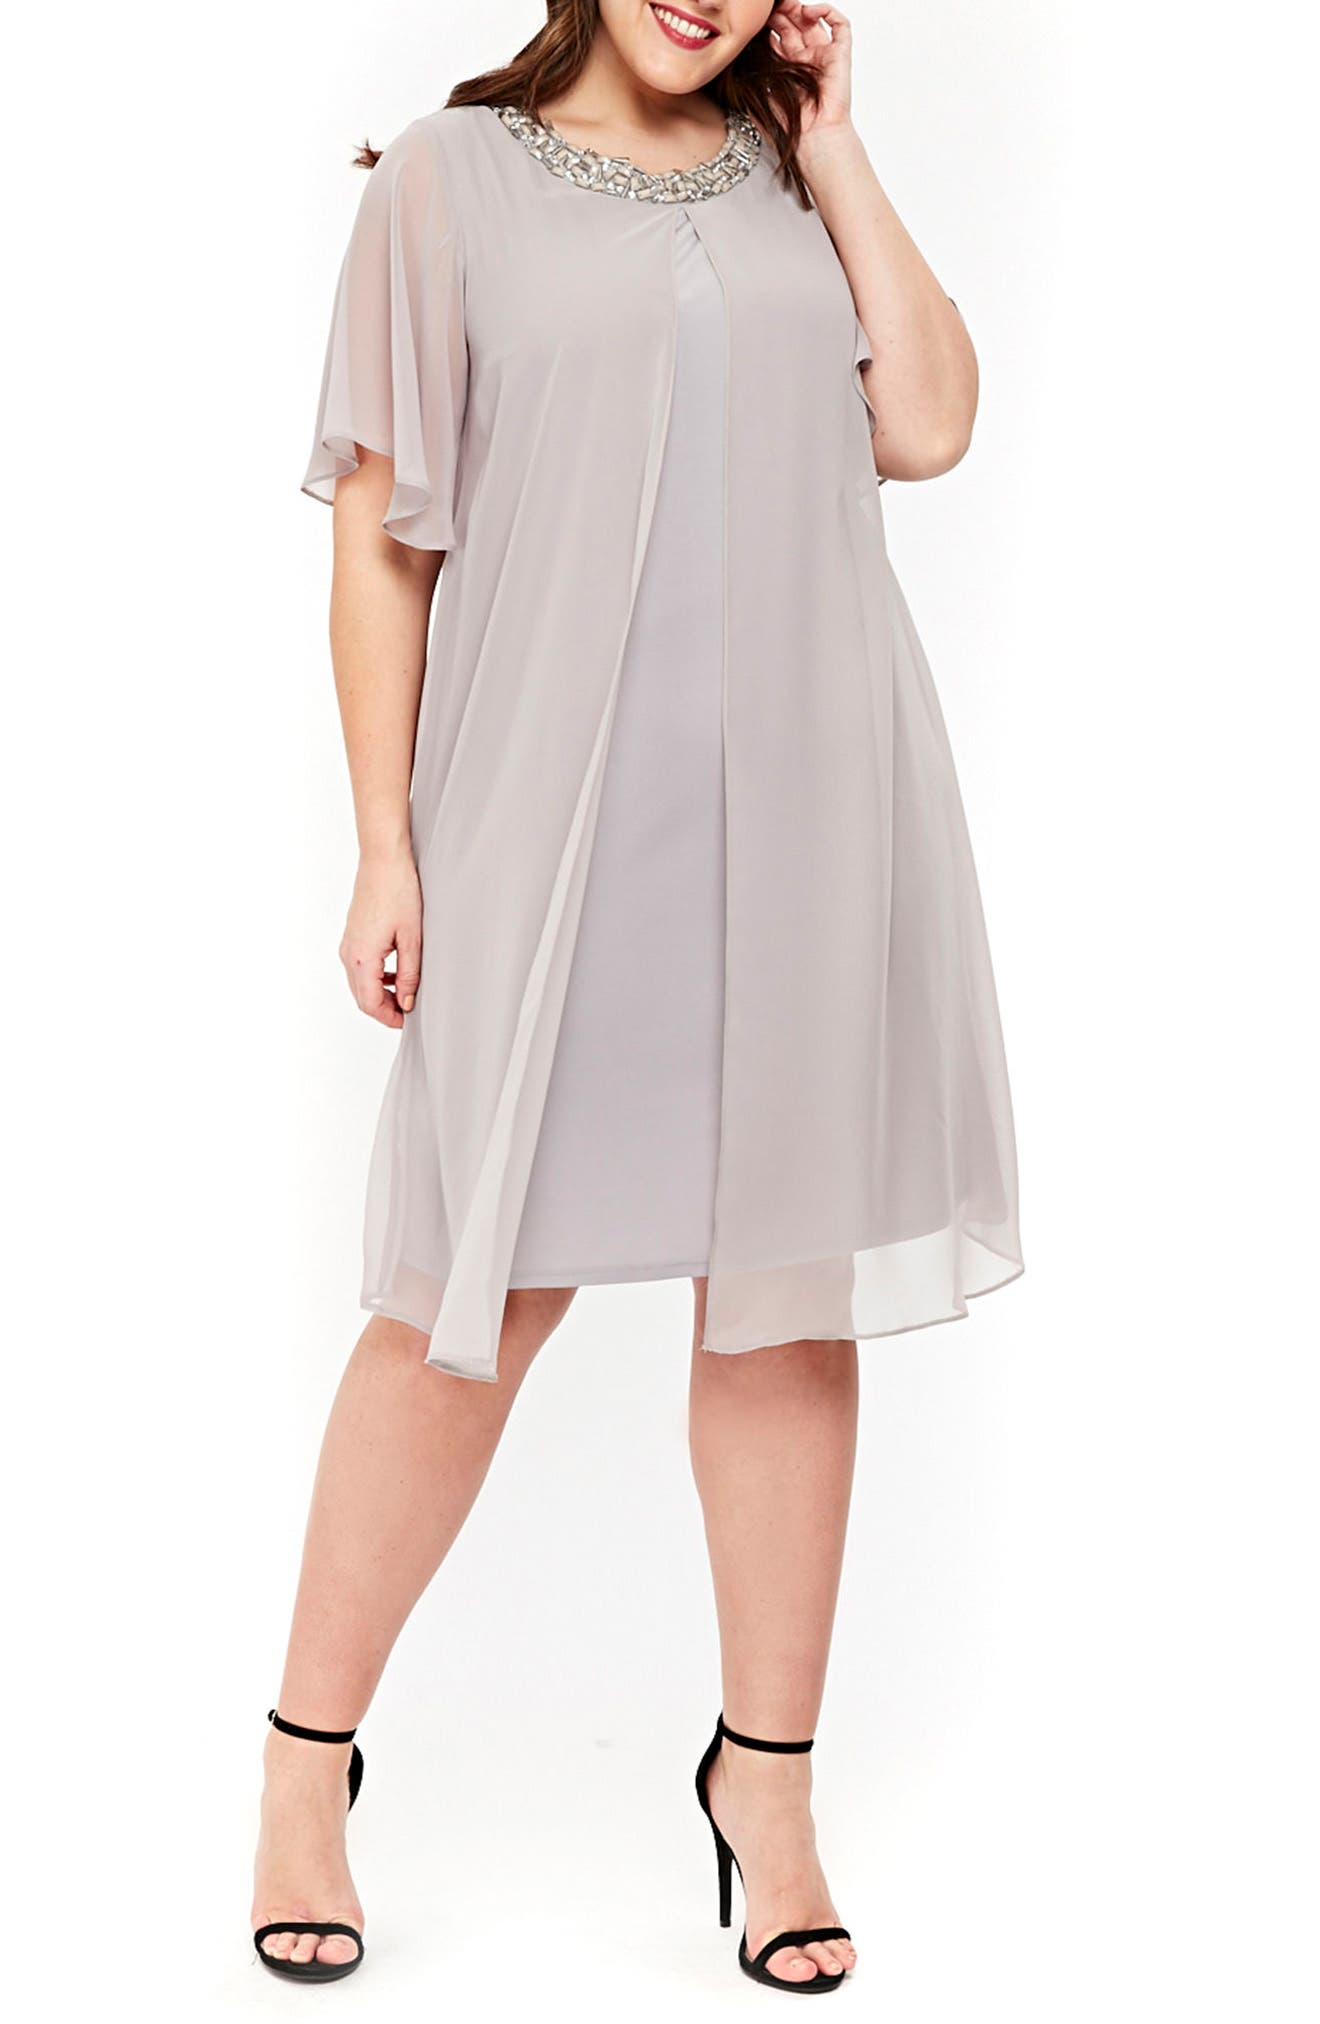 Embellished Neck Split Overlay Shift Dress,                             Main thumbnail 1, color,                             020